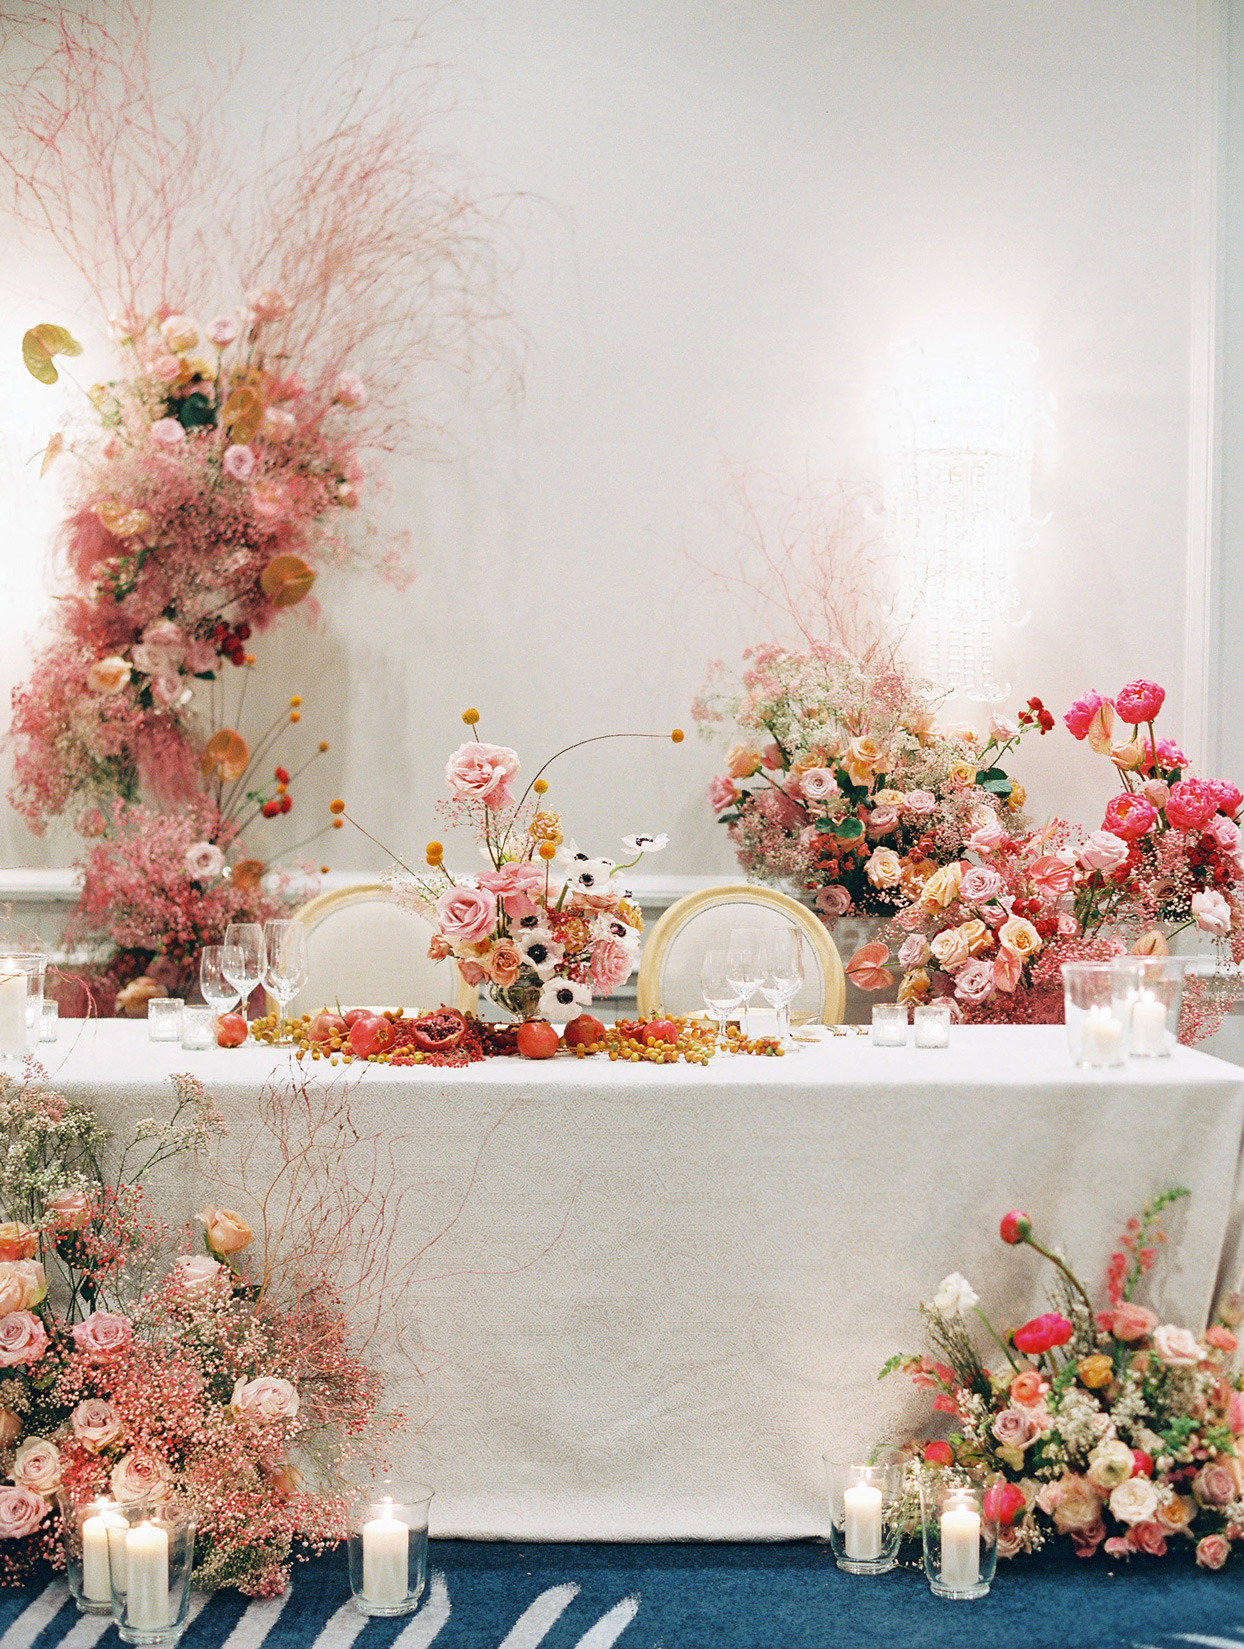 sweetheart table surrounded by various floral displays